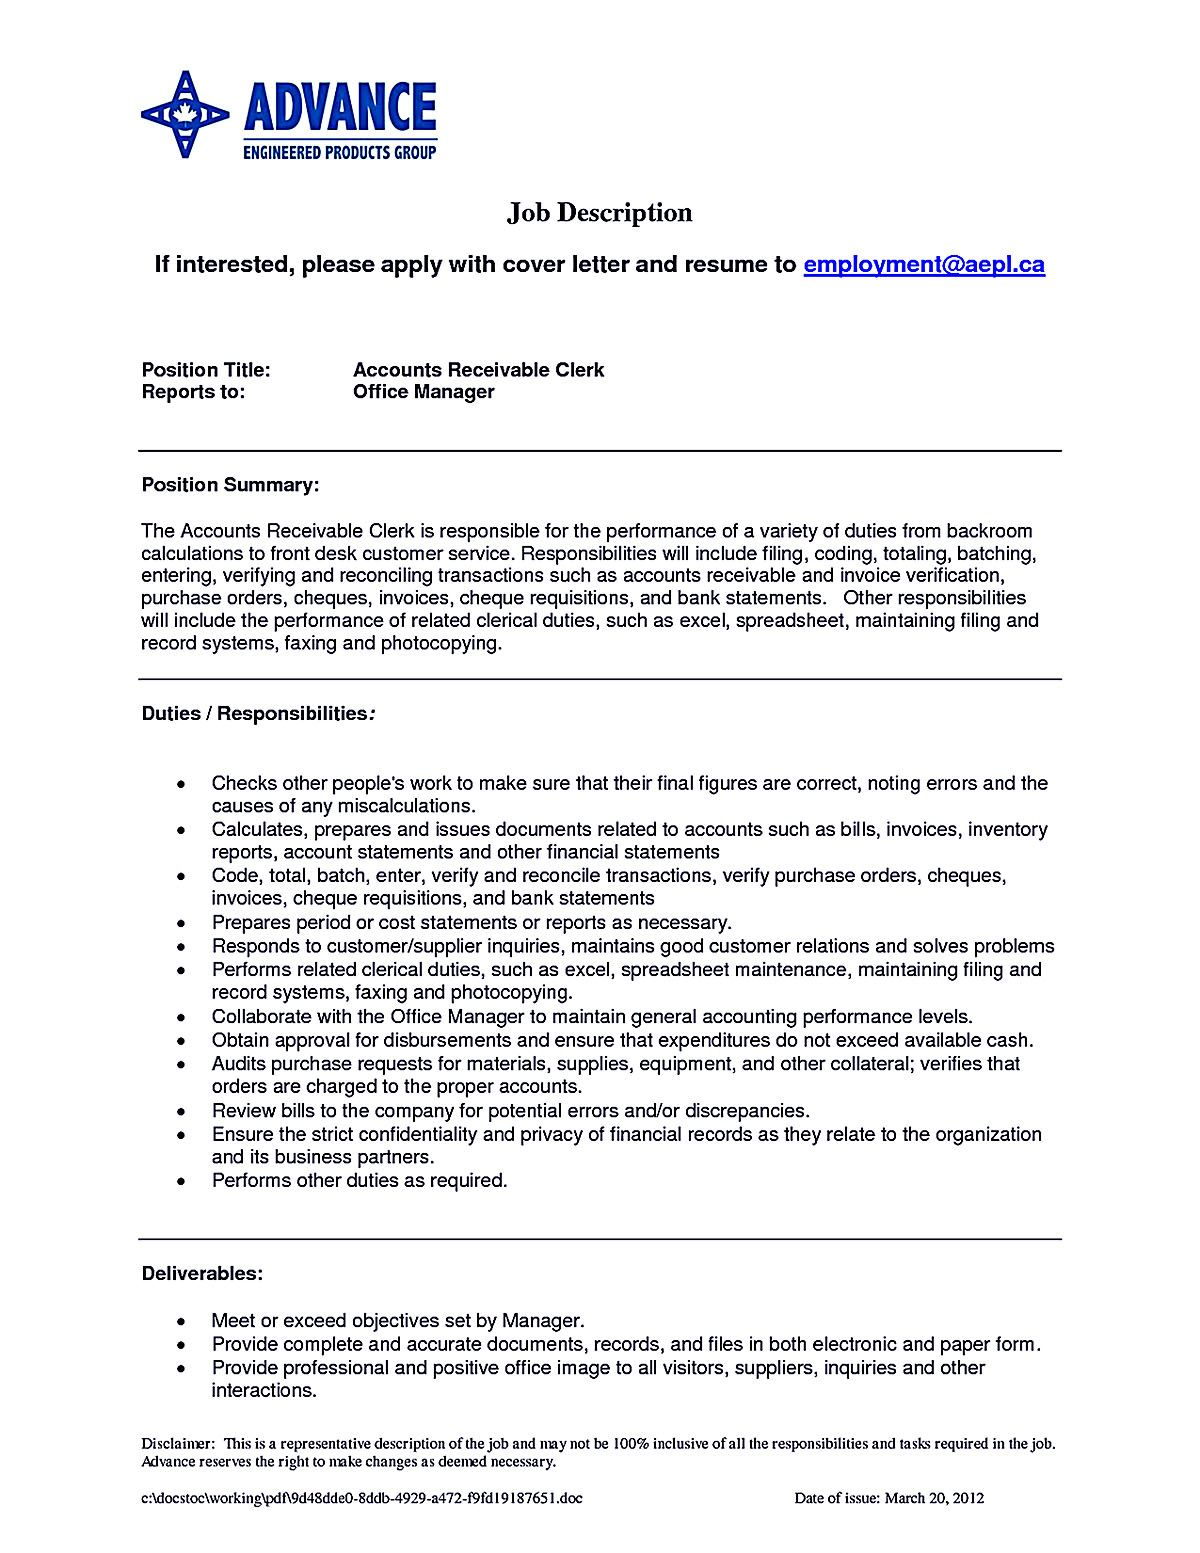 Account Receivable Resume Account Receivable Resume Shows Both Technical And Interpersonal